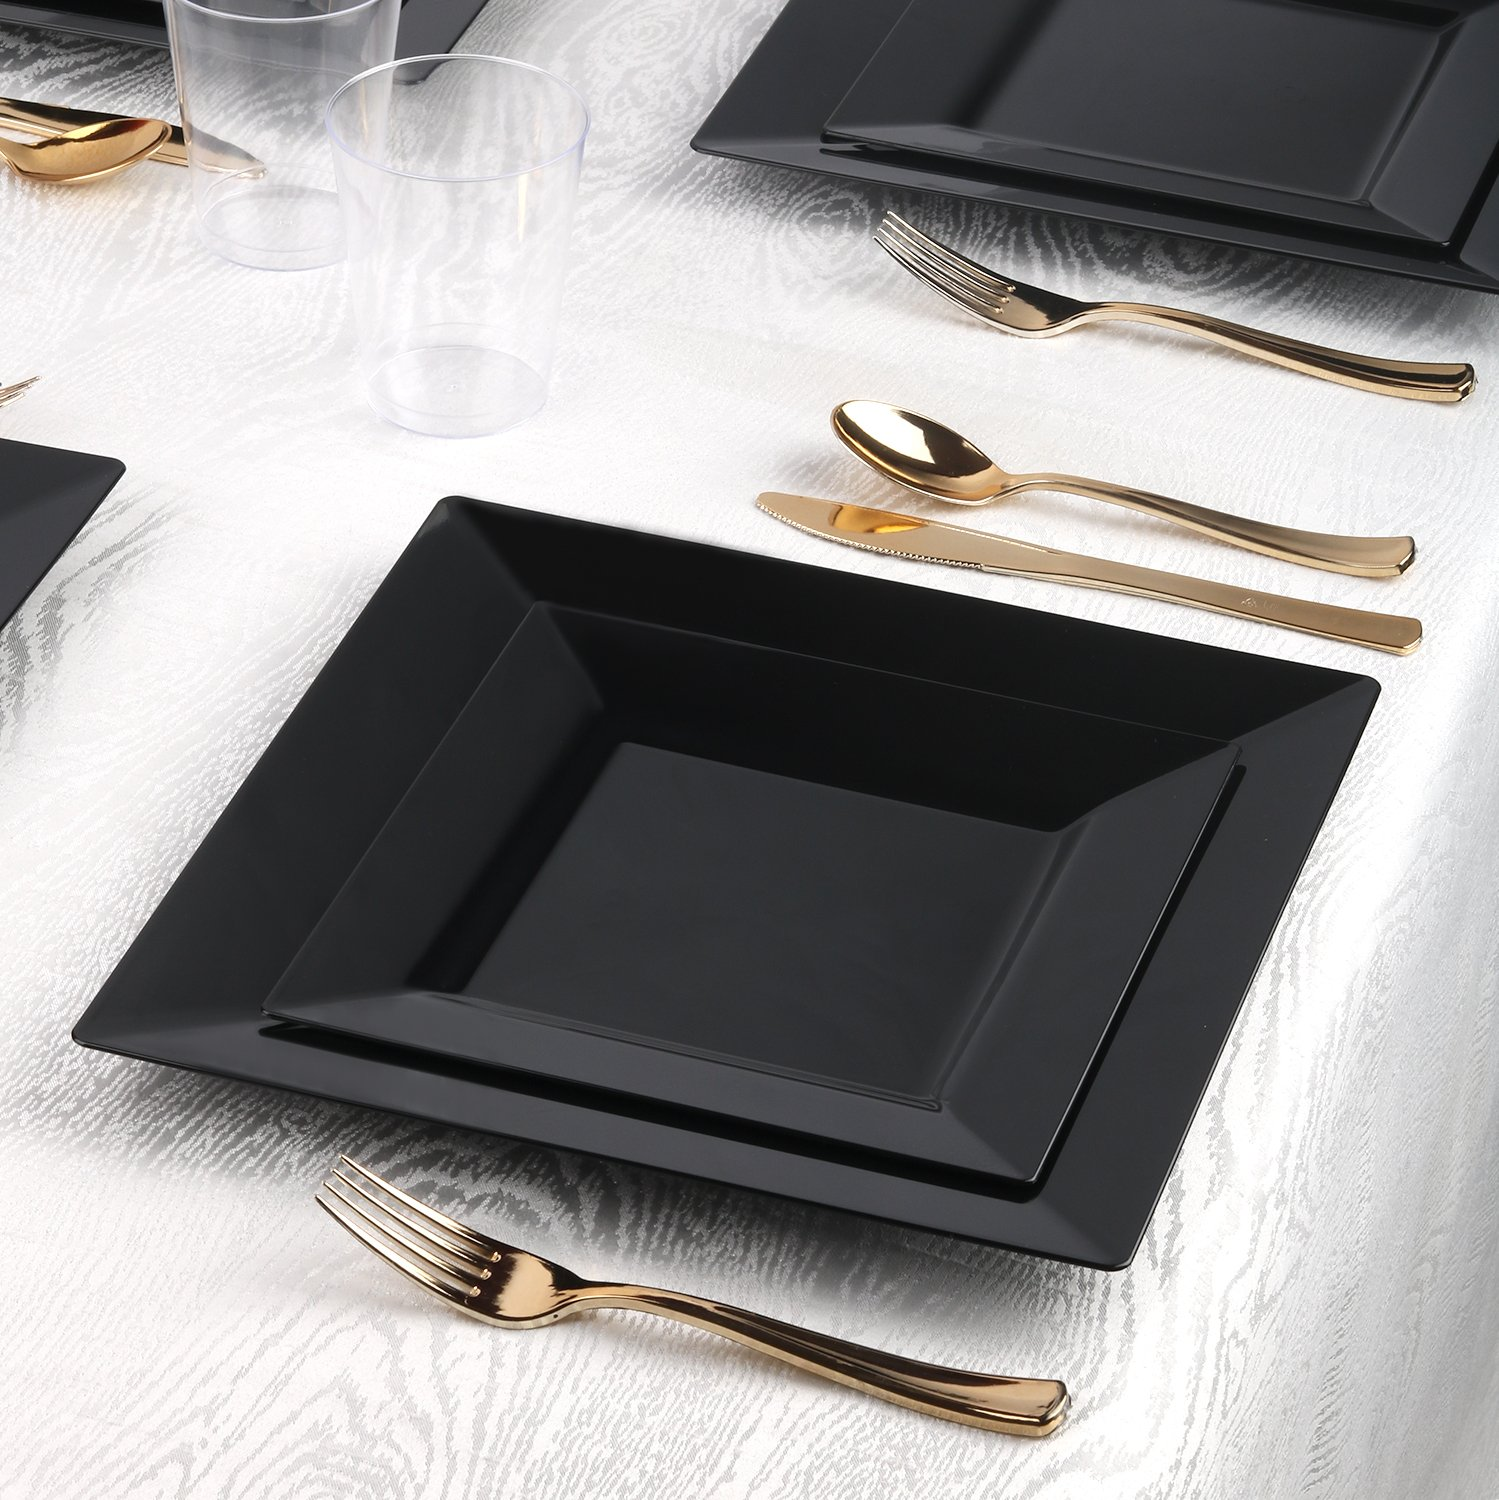 Kaya Collection - Black Plastic Square 10.75'' Dinner Plates - Disposable or Reusable - 1 Case (120 Plates) by Kaya Collection (Image #2)